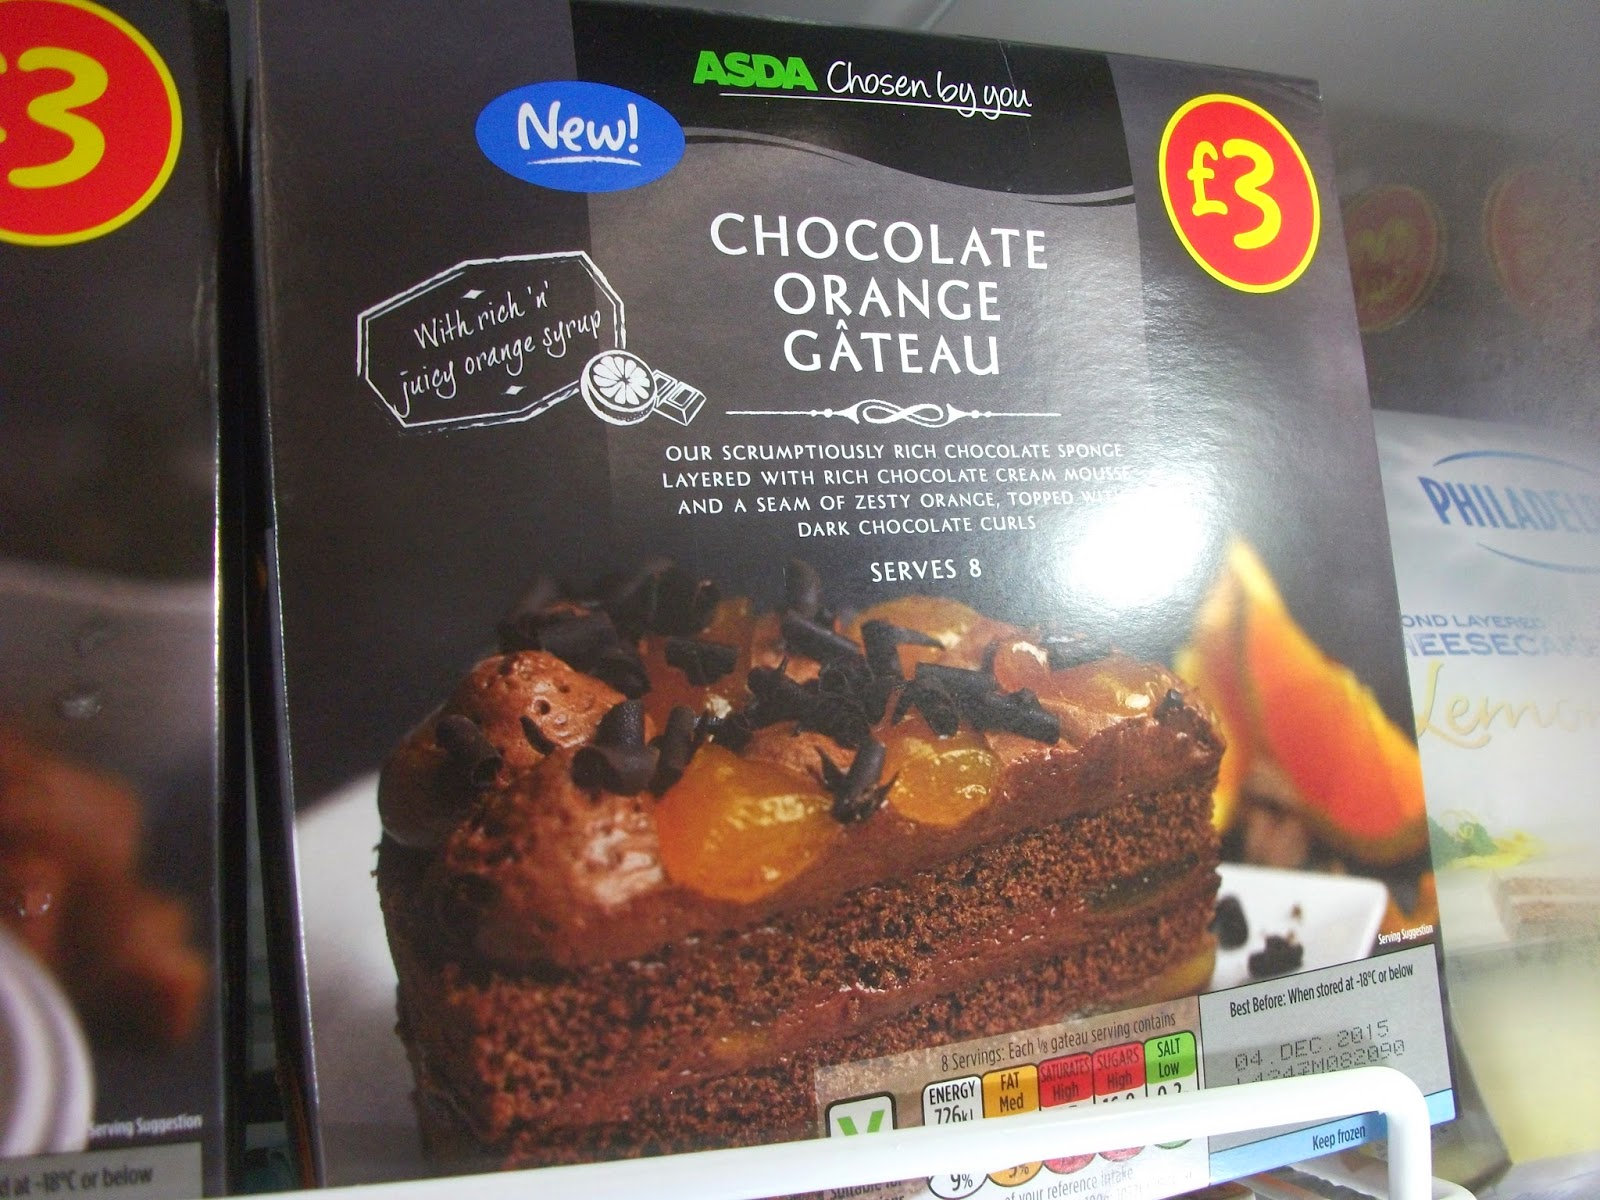 New At Asda Dessert Hybrids Cheesecakes Gateaus Pies